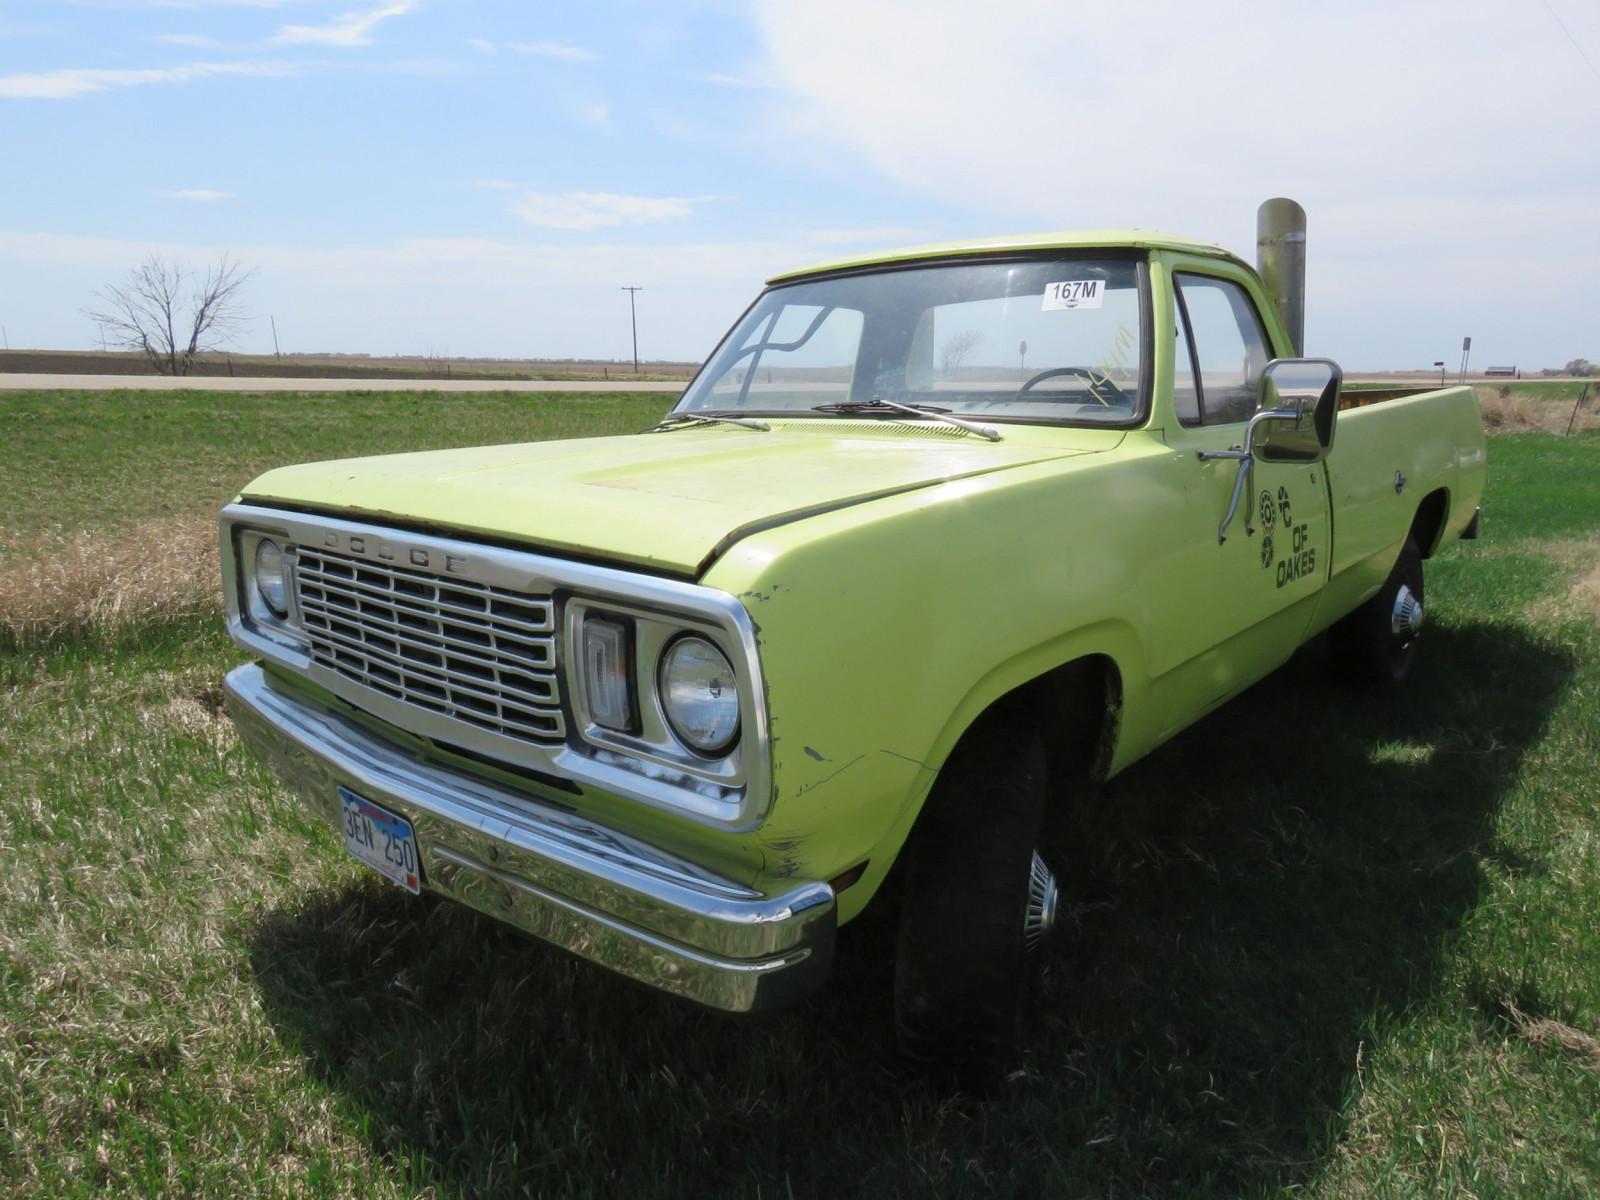 1977 Dodge Power Wagon - Image 3